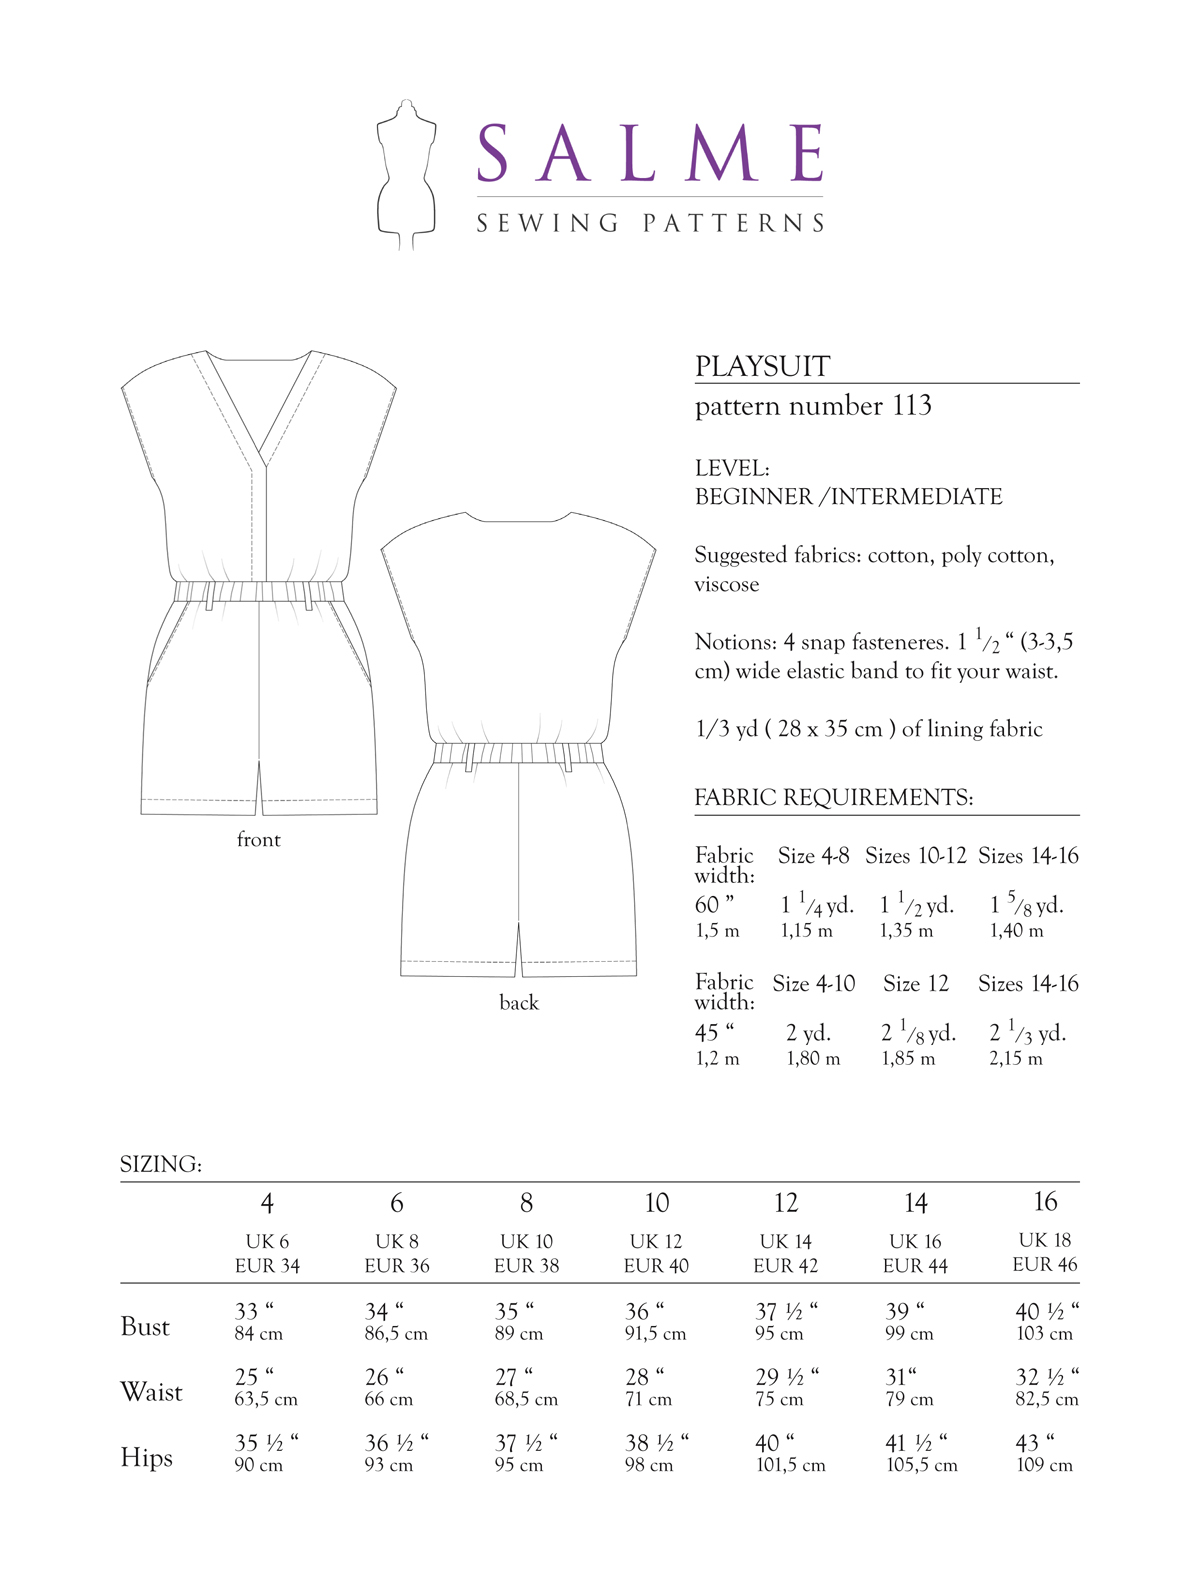 Salme Sewing Patterns 113 Playsuit Downloadable Pattern